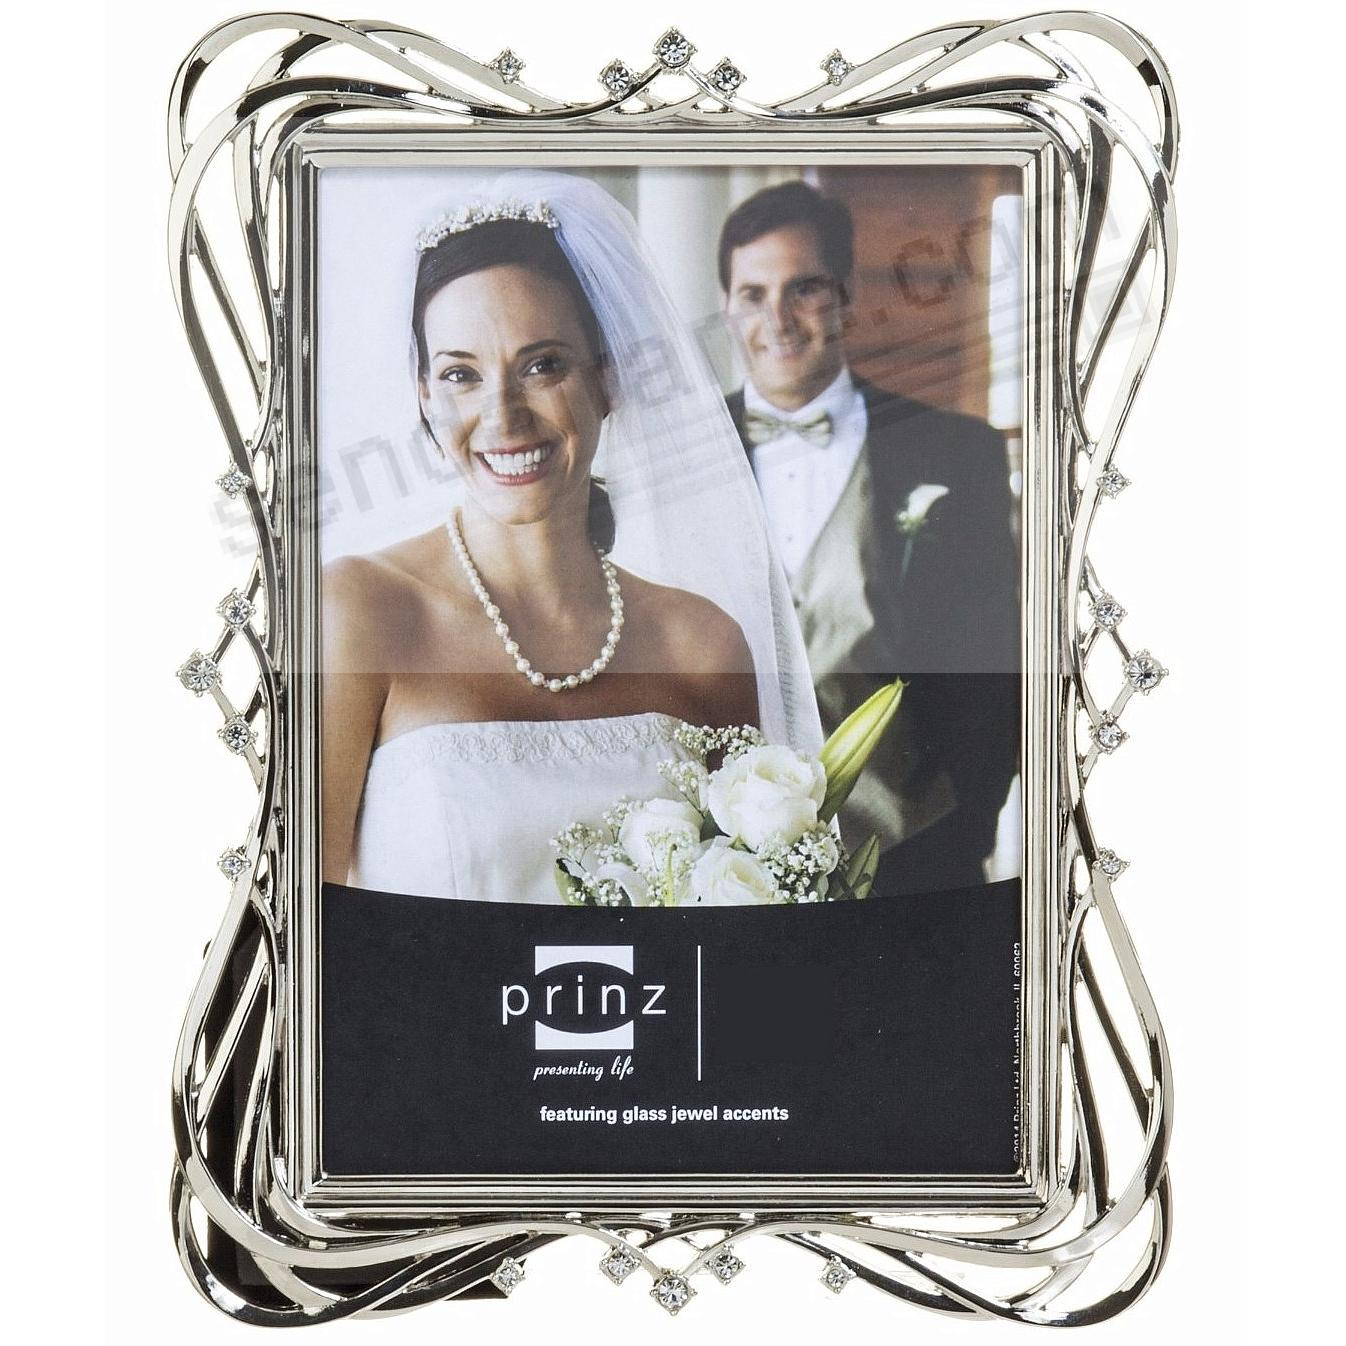 Top ENCHANTED Silver Jeweled Crystal 5x7 frame by Prinz - Picture  ZY27